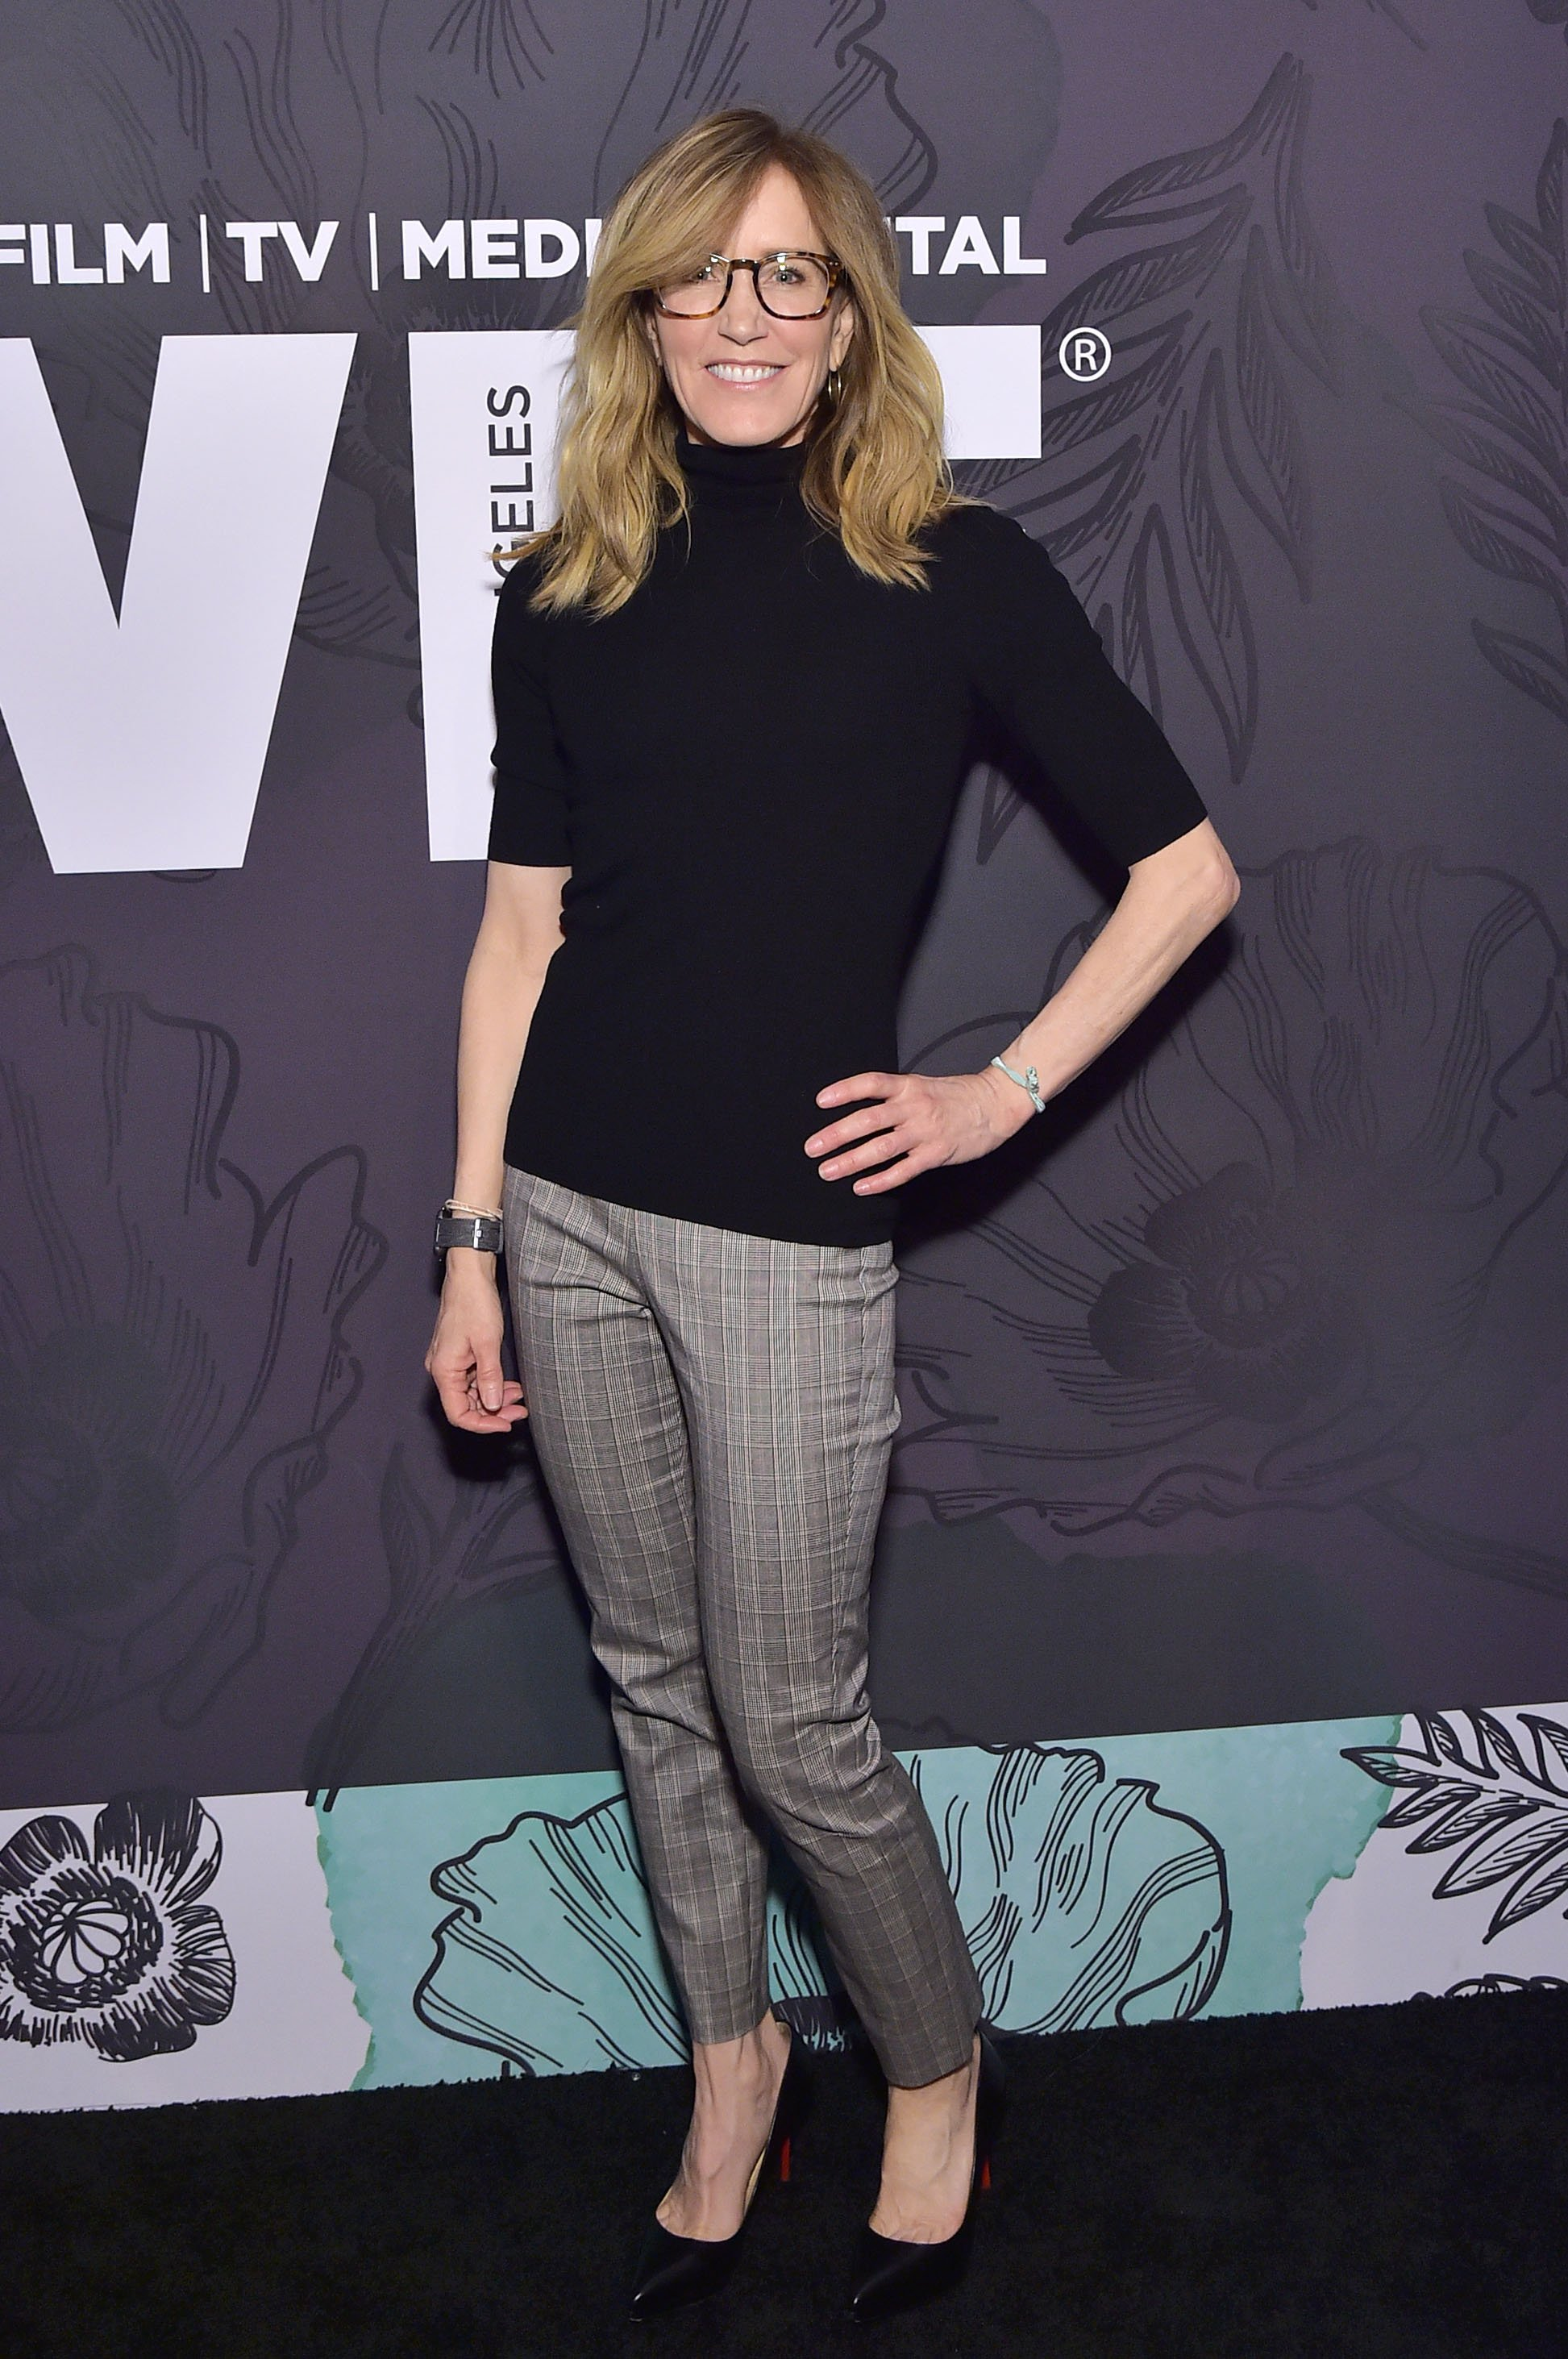 Felicity Huffman attends the 12th Annual Women in Film Oscar Nominees Party on February 22, 2019, in Los Angeles, California. | Source: Getty Images.